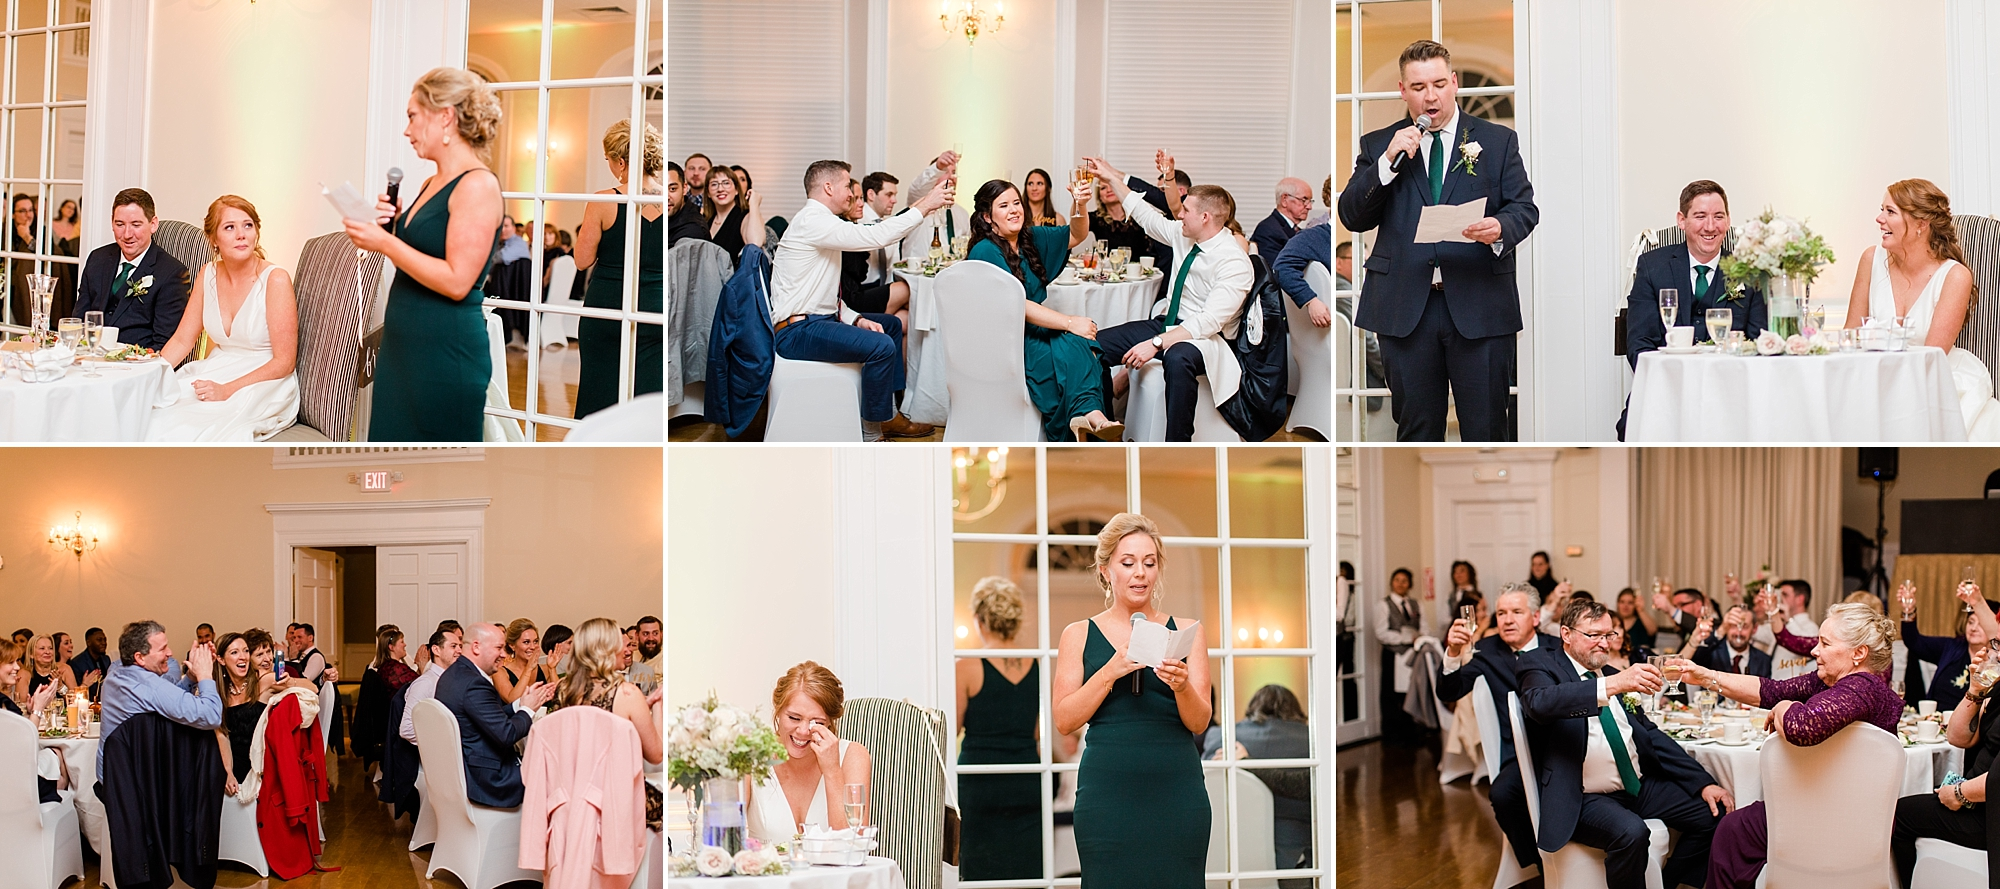 Anna's little sister/Maid of Honor delivered the sweetest toast that had a closing statement that had the crowd roaring with laughter. She set up the crowd perfectly for Bob's brother, Martin. From start to finish, he had us all in tears from laughing. It was truly the best way to start the night!